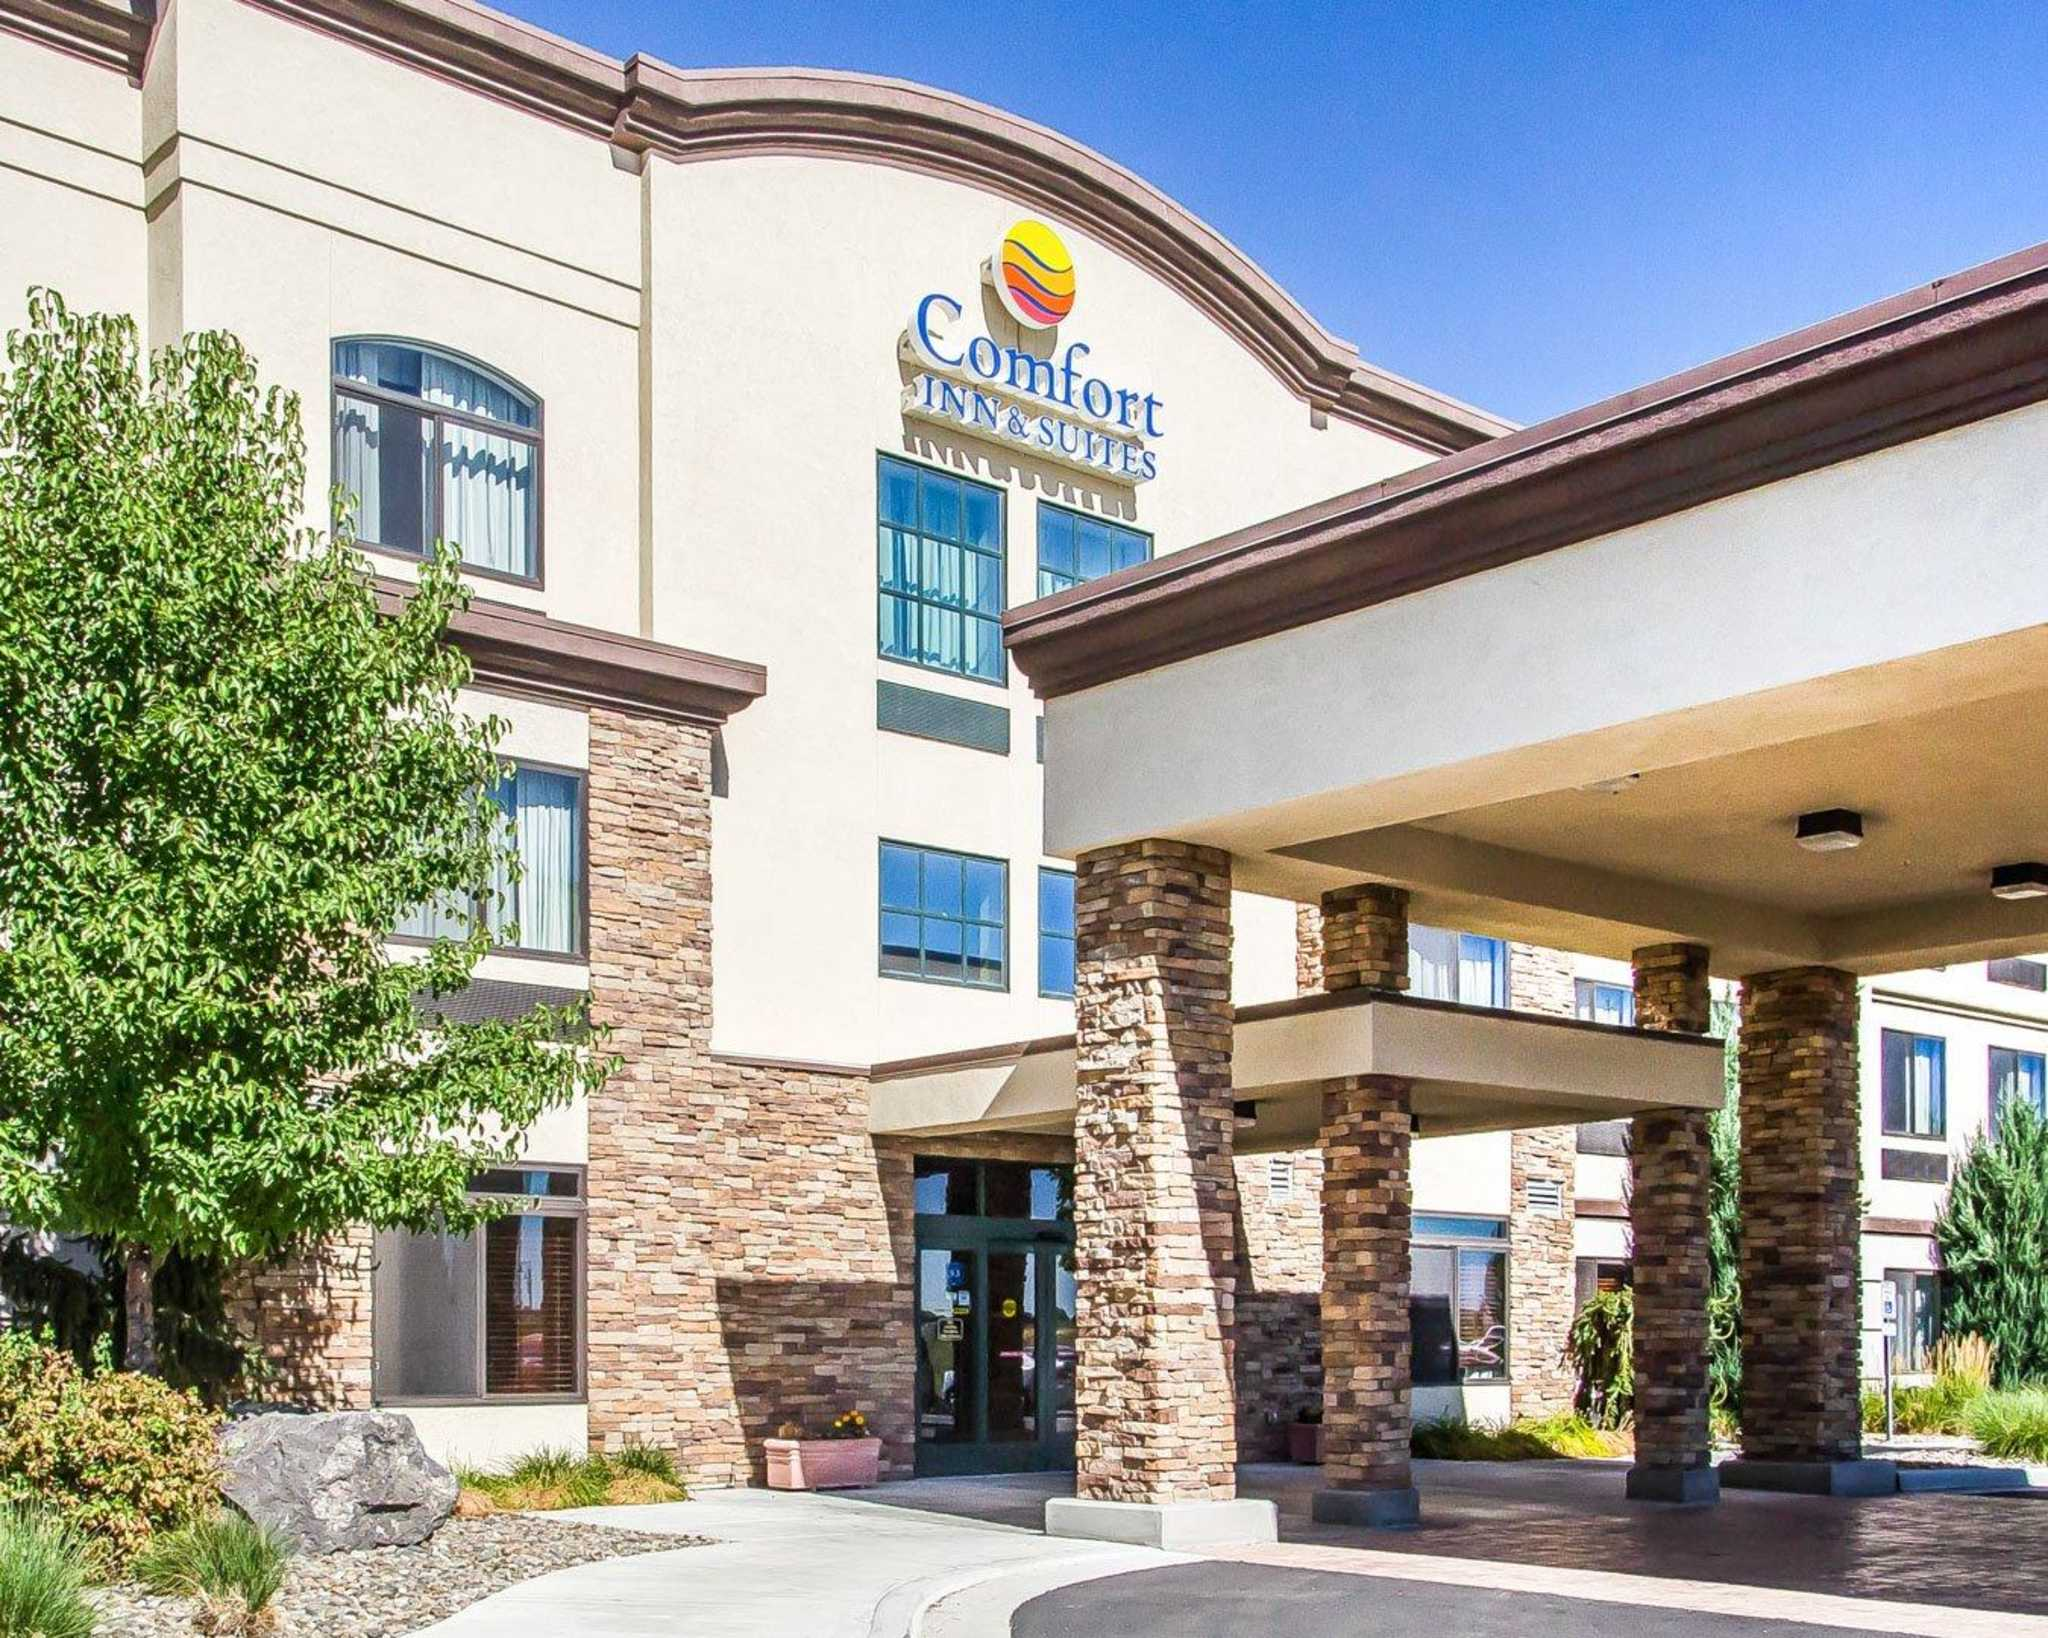 Comfort Inn & Suites Jerome - Twin Falls image 0